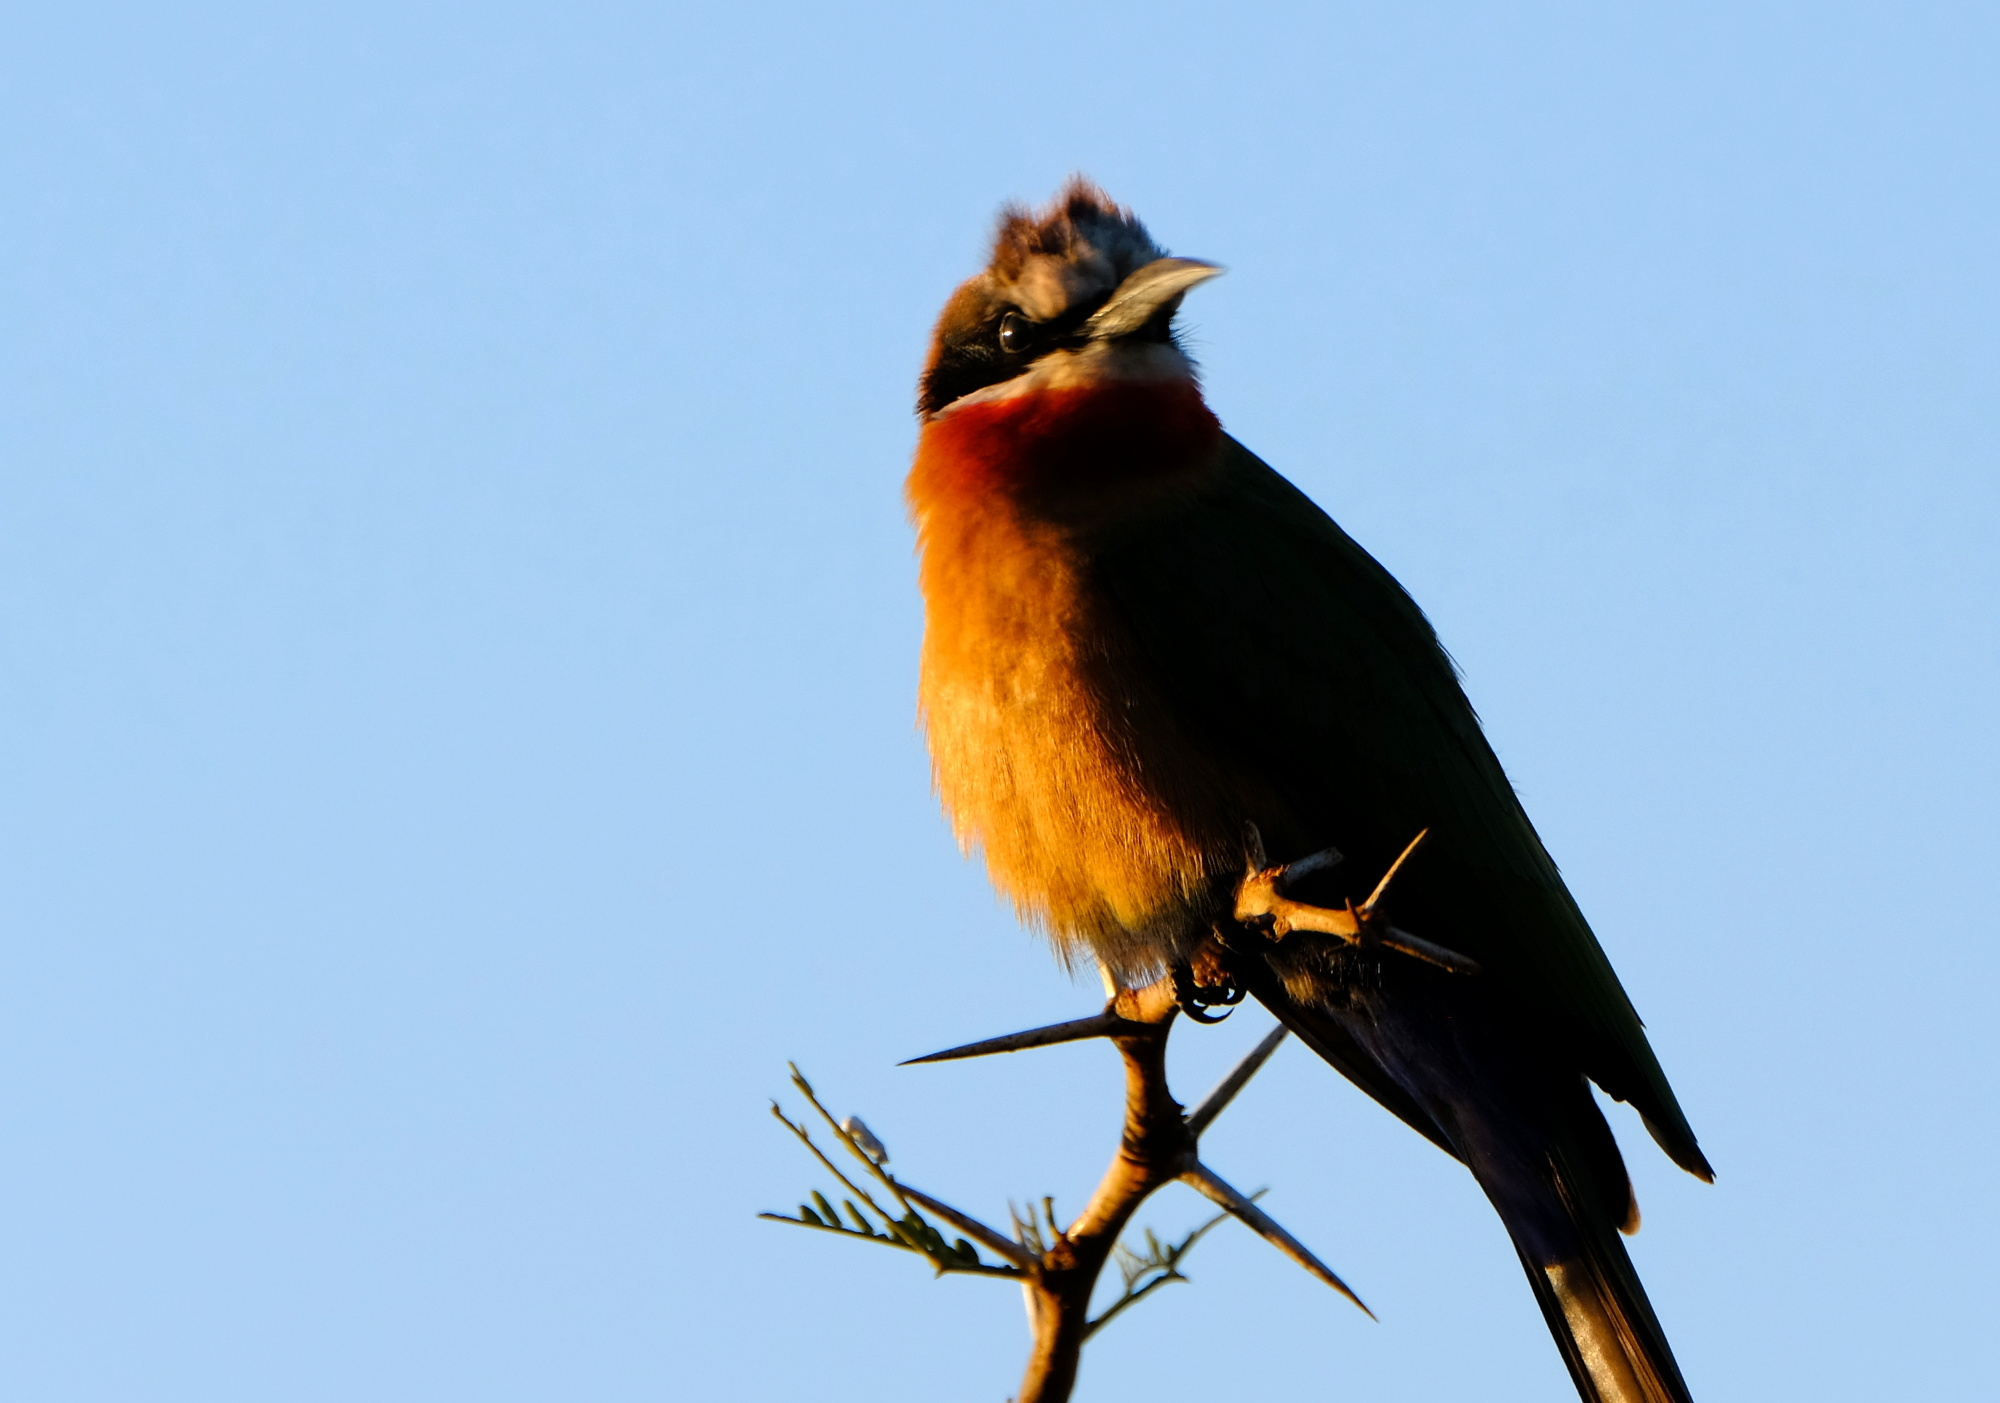 This bird was captured using the 100-400mm lens at full zoom.